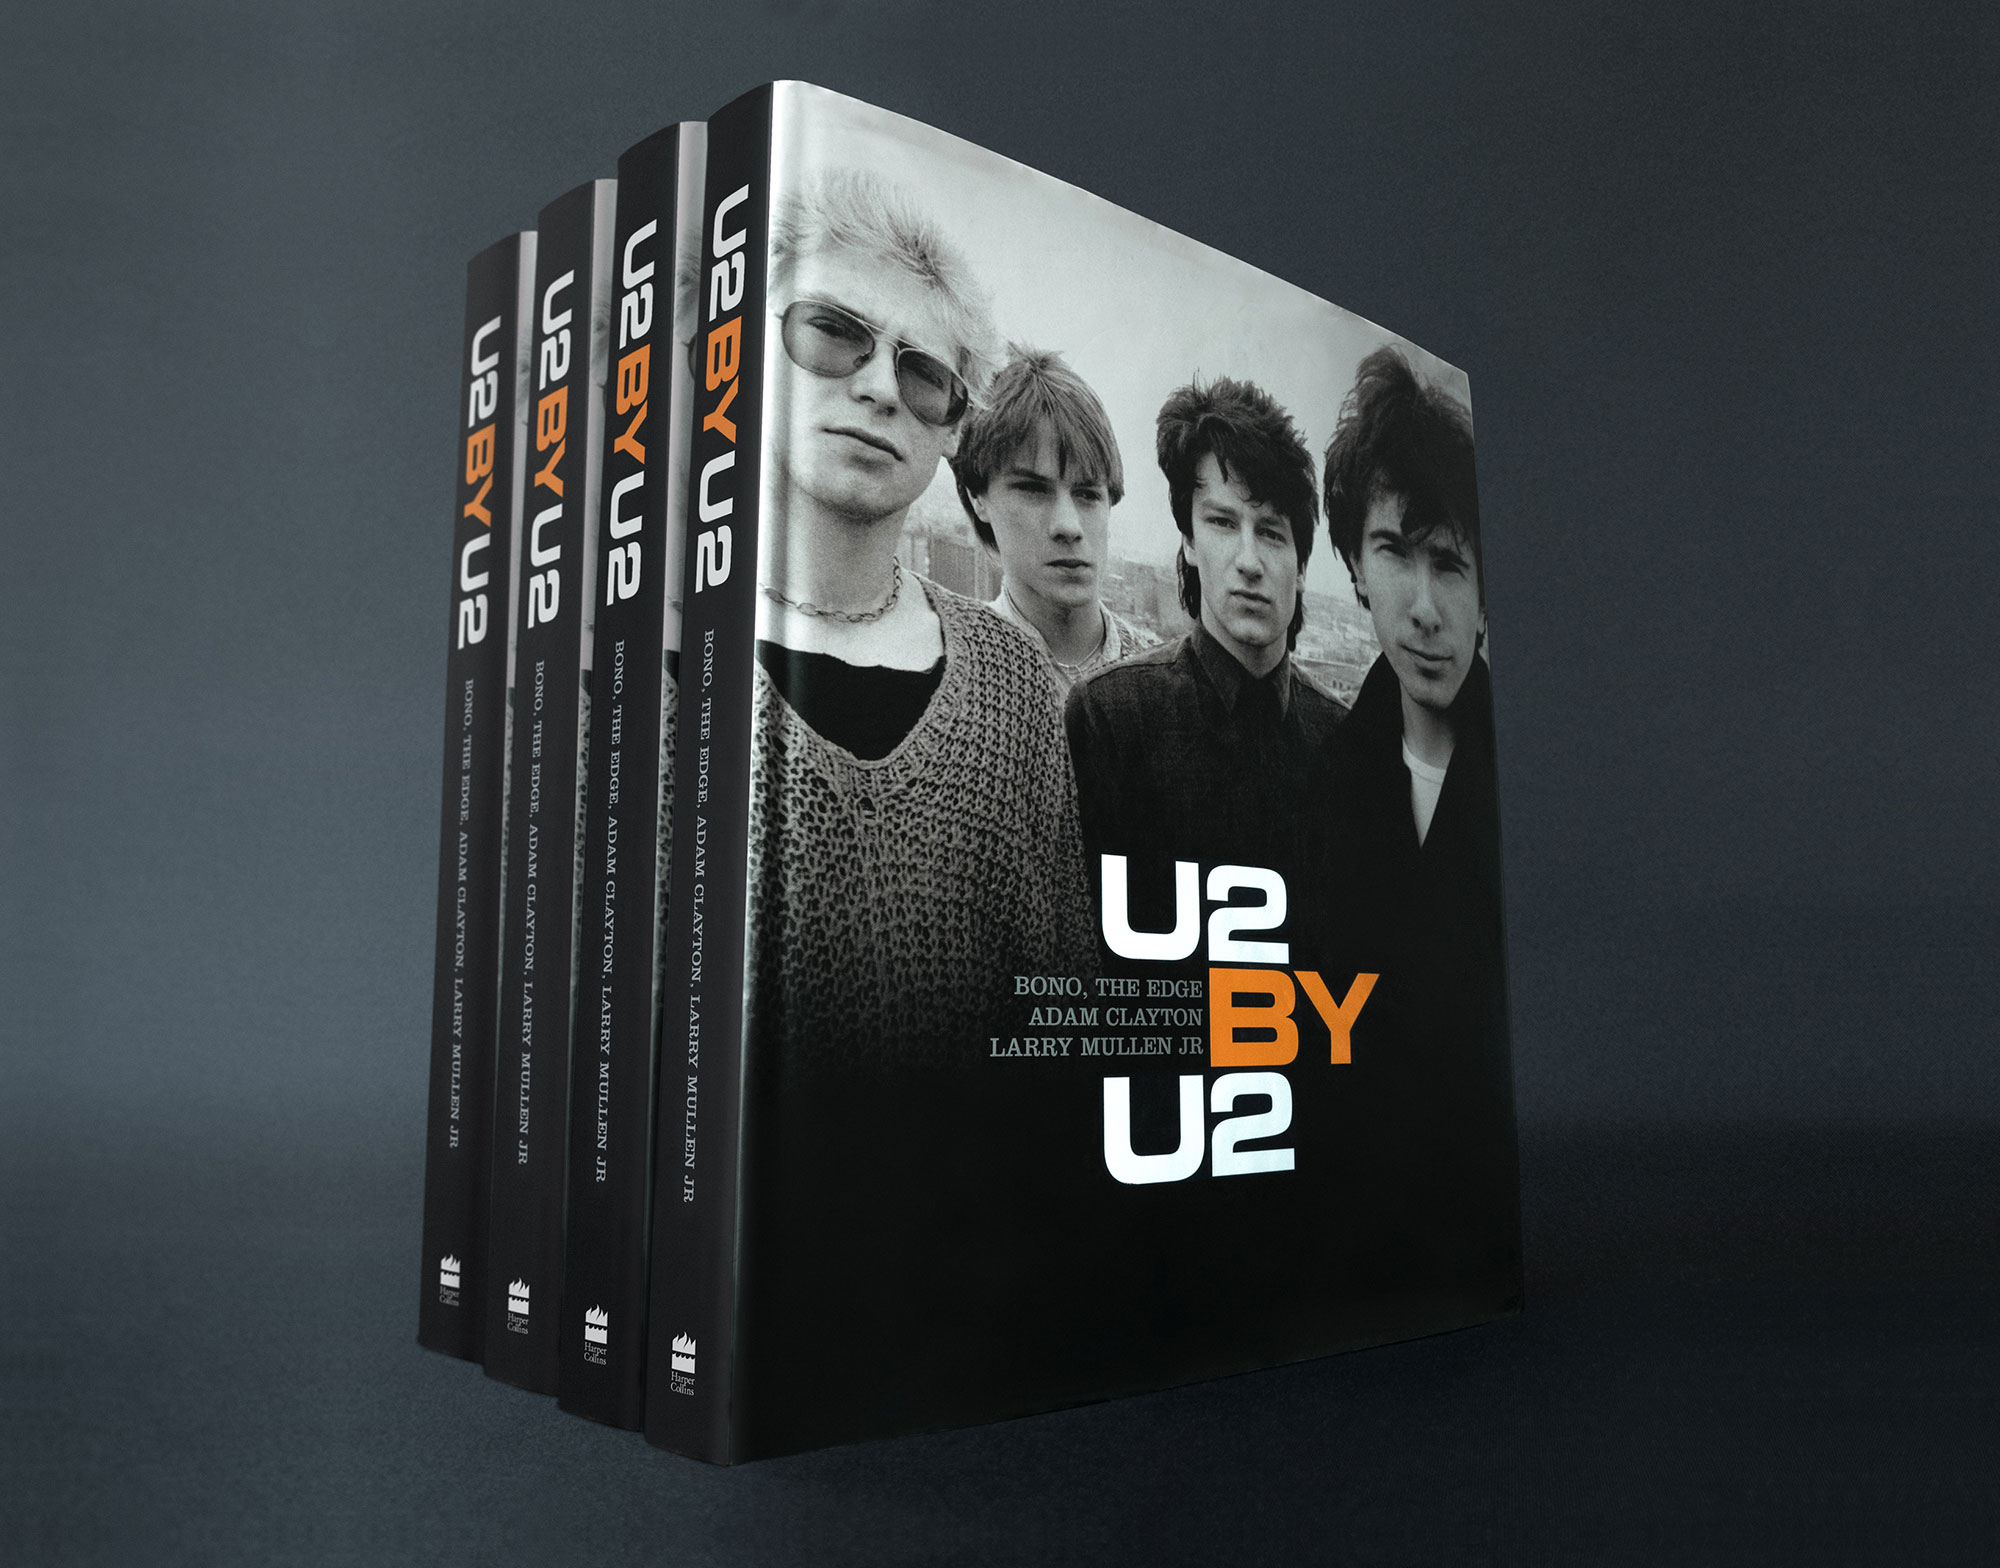 U2 by U2 Book Cover Design Dublin London